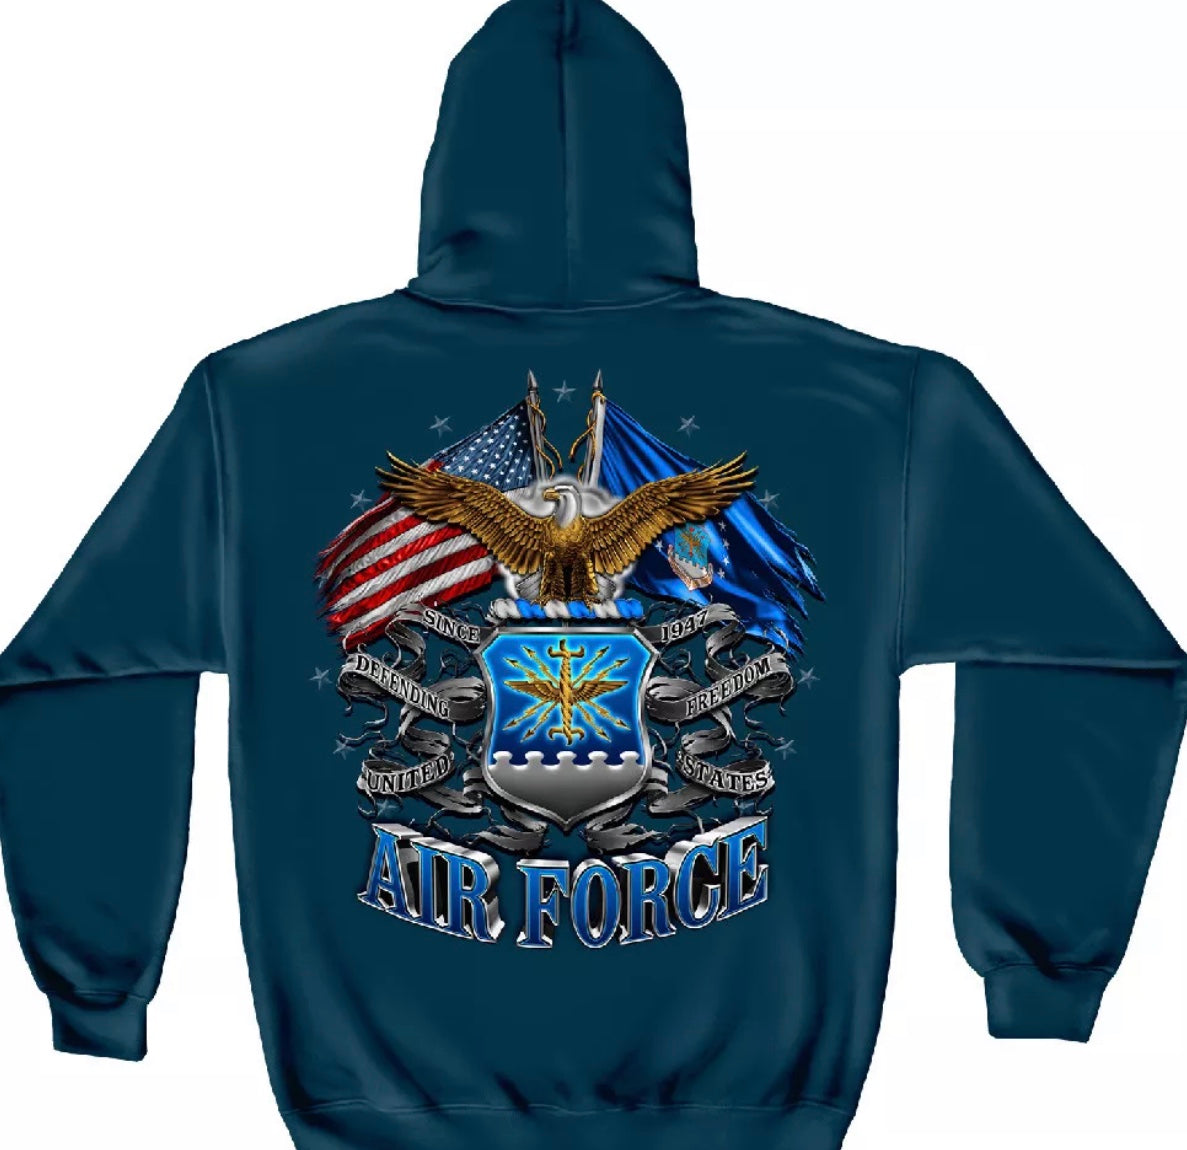 Airforce 2 Flag Sweatshirt - The Wall Kids, Inc.